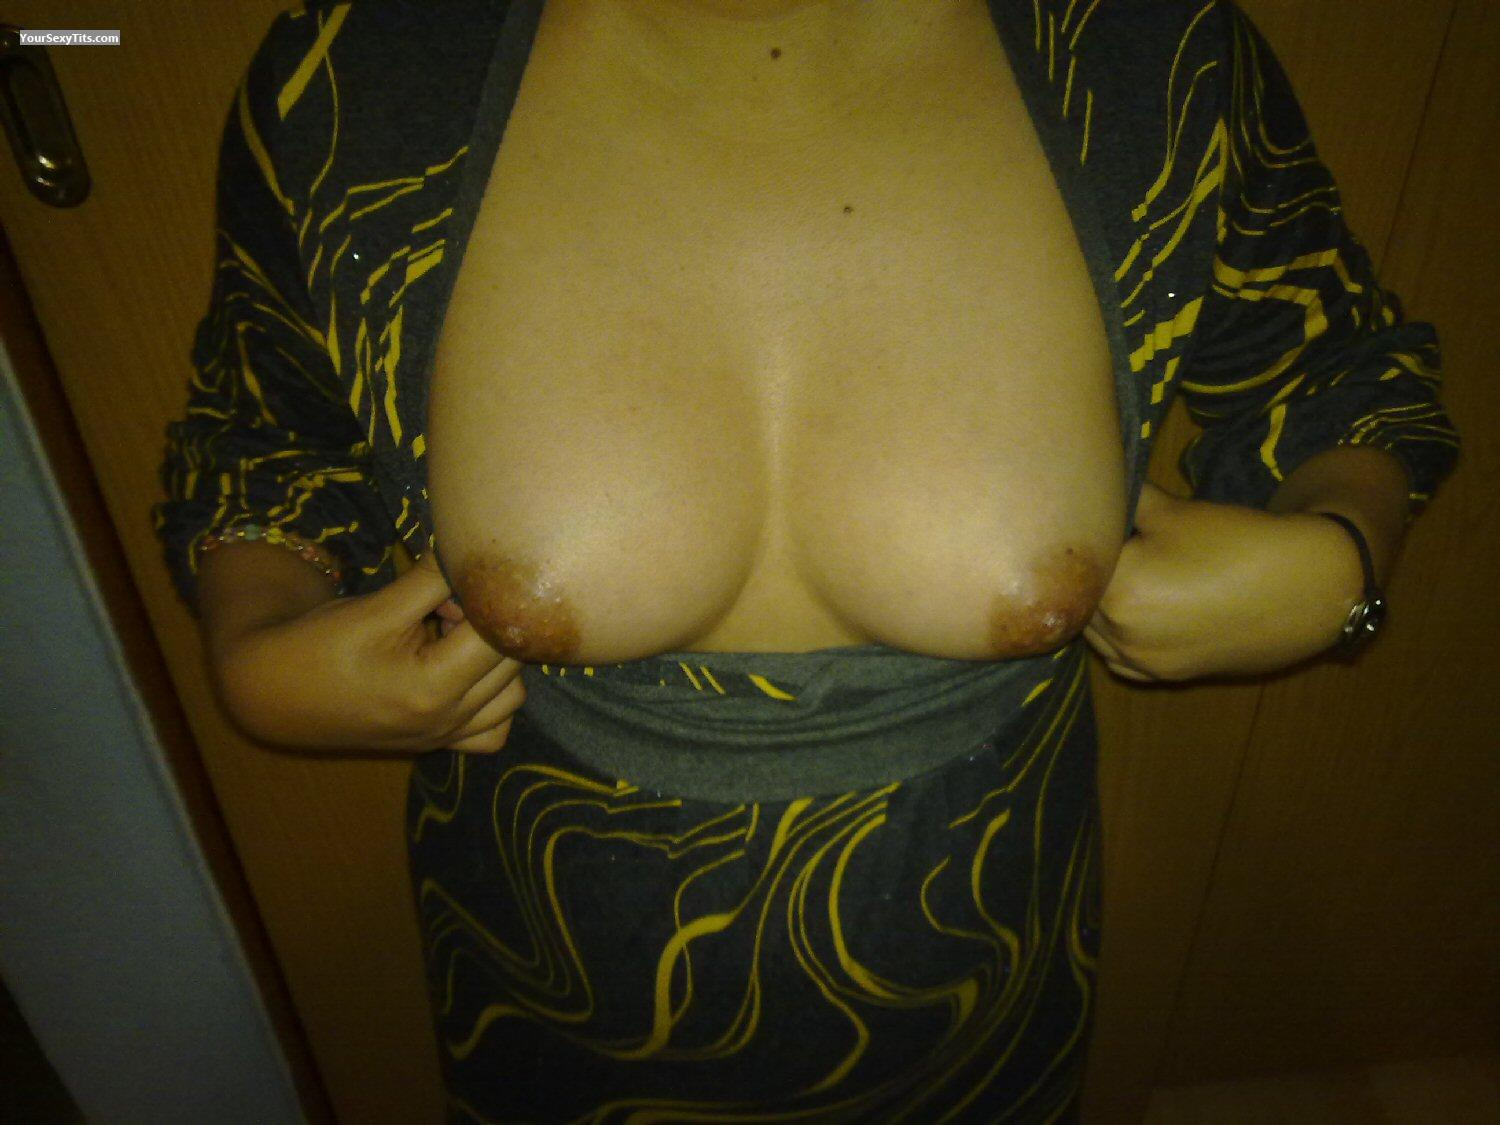 Tit Flash: Medium Tits - MiPosha from Mexico